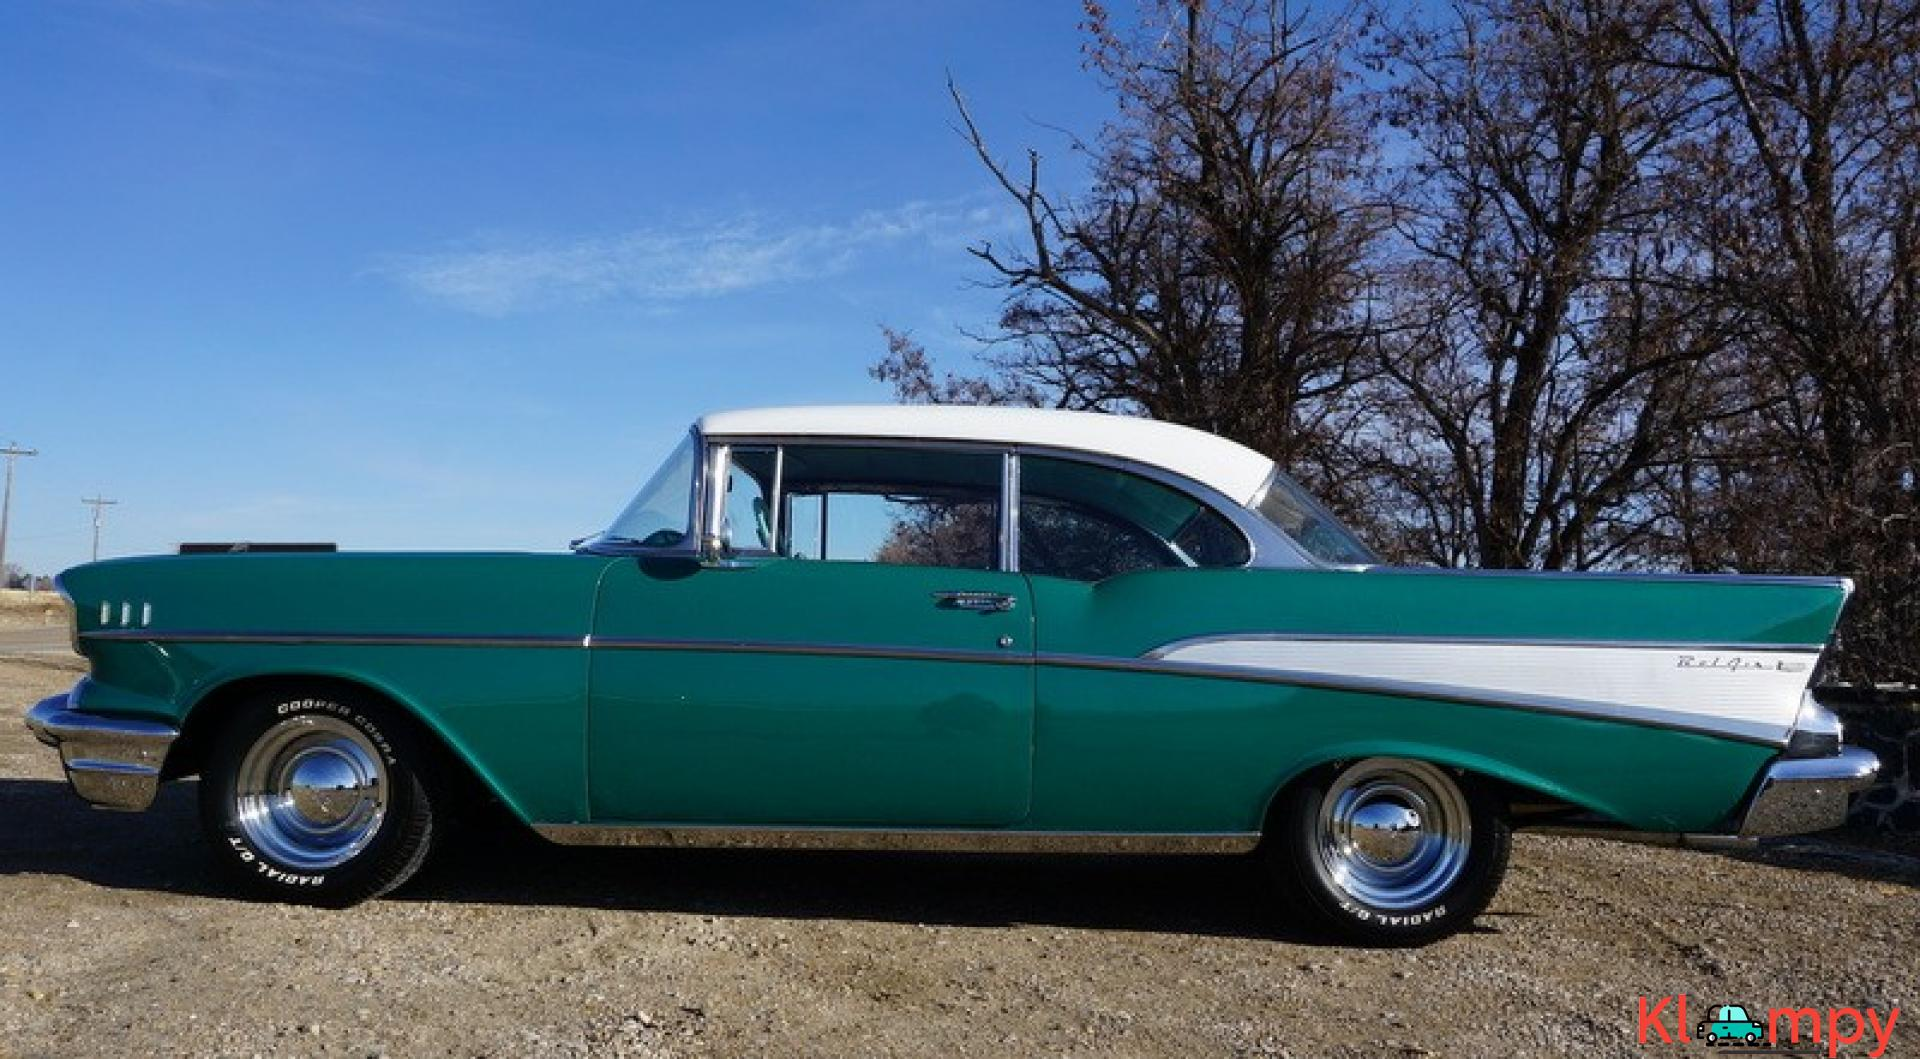 1957 Chevrolet Bel Air 150 210 Hardtop - 9/20